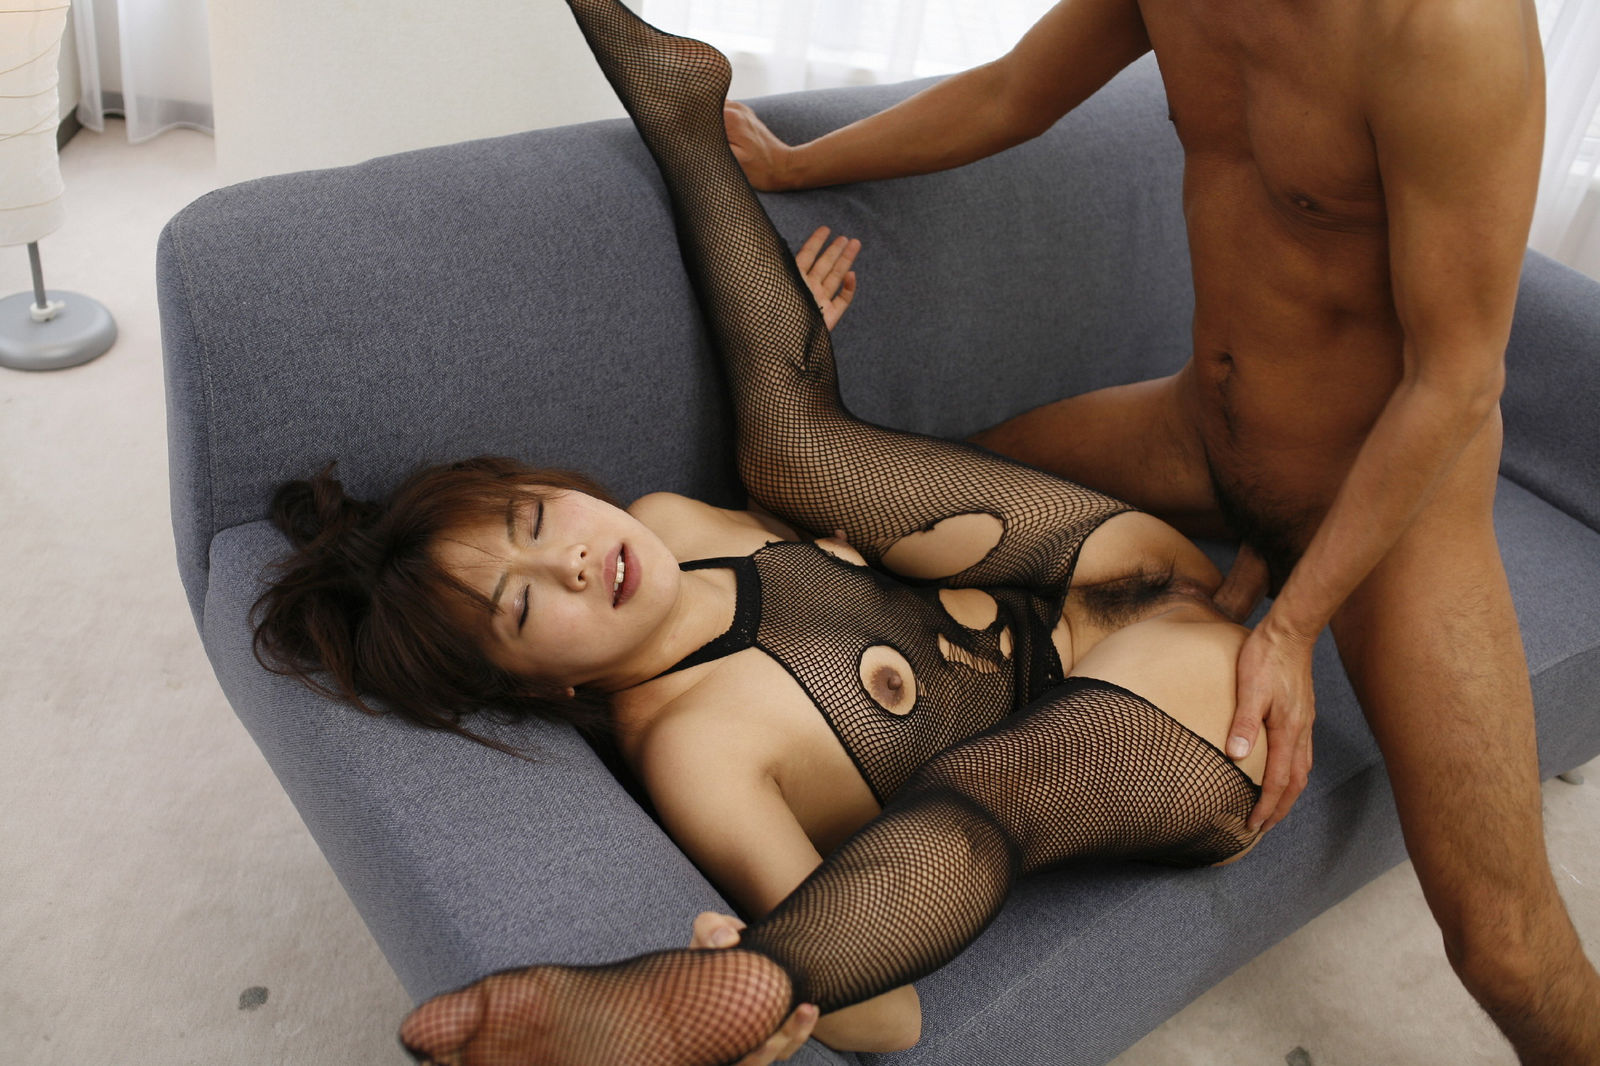 Tan Stockings Scene Plays High Class Free Porn Images